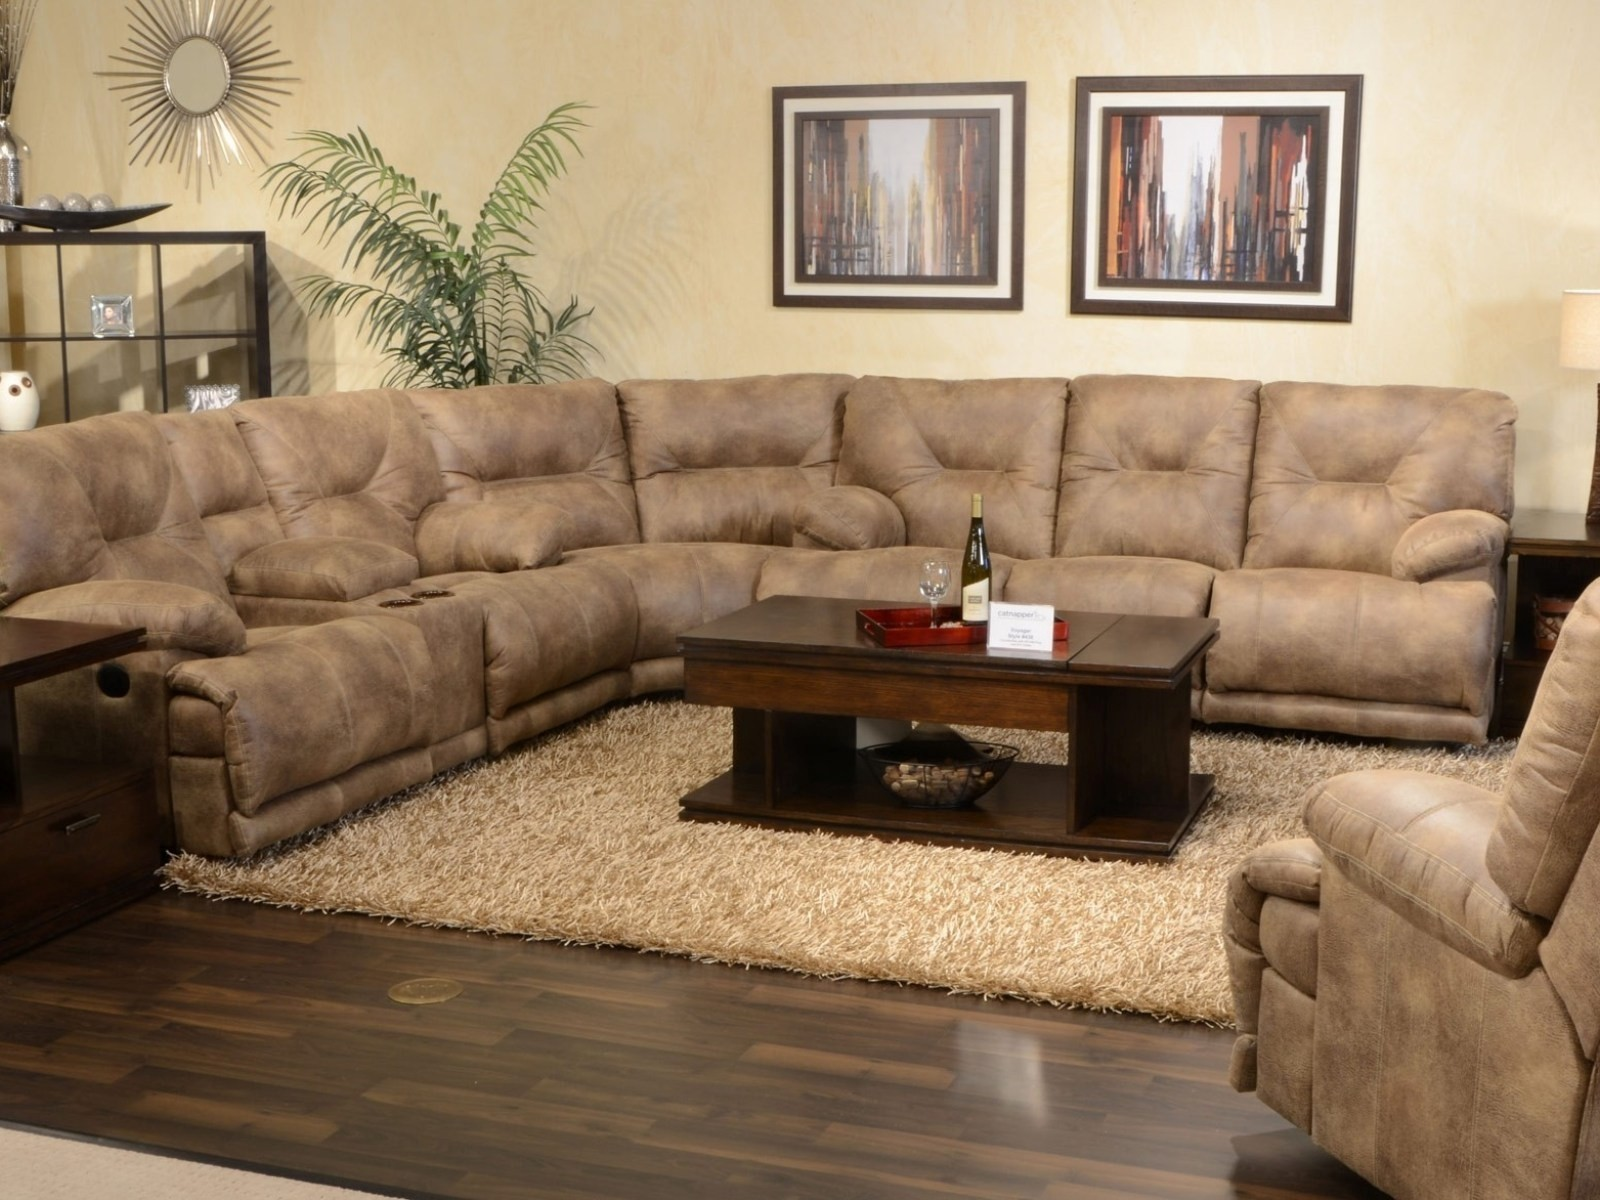 Rustic Sectional sofas Elegant Small Rustic Sectional sofa Pinterest Collection